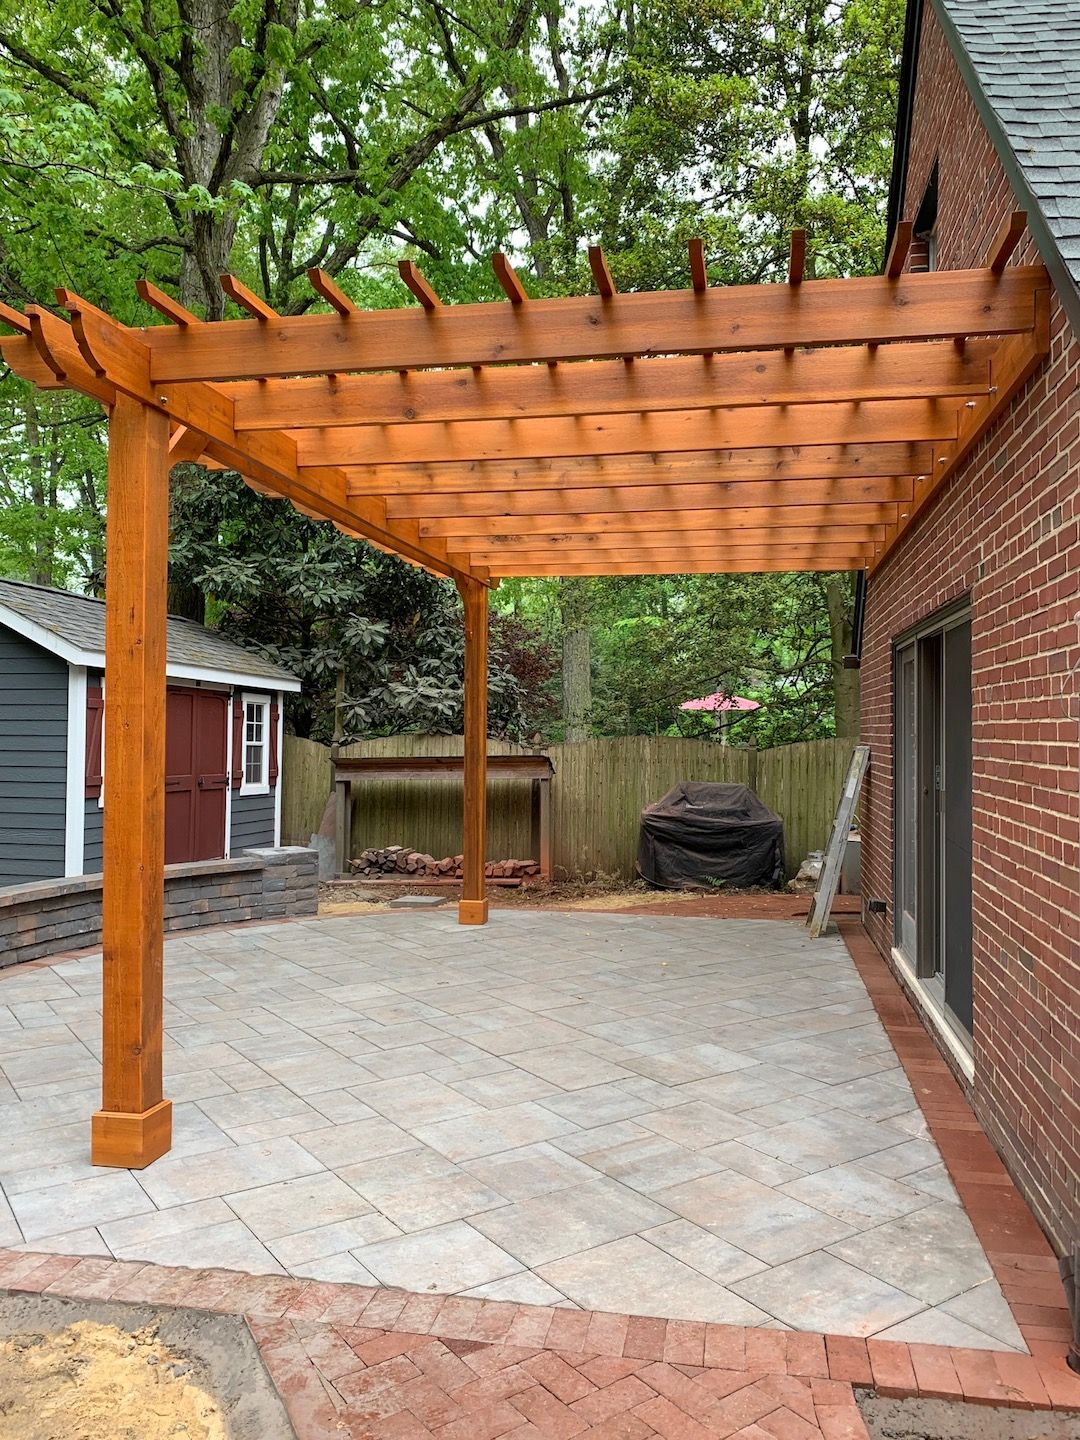 Attached Pergola Ideas Find Backyard Living Ideas Attached Pergola Designs At Pergola Depot Outdoor Pergola Patio Design Pergola Designs